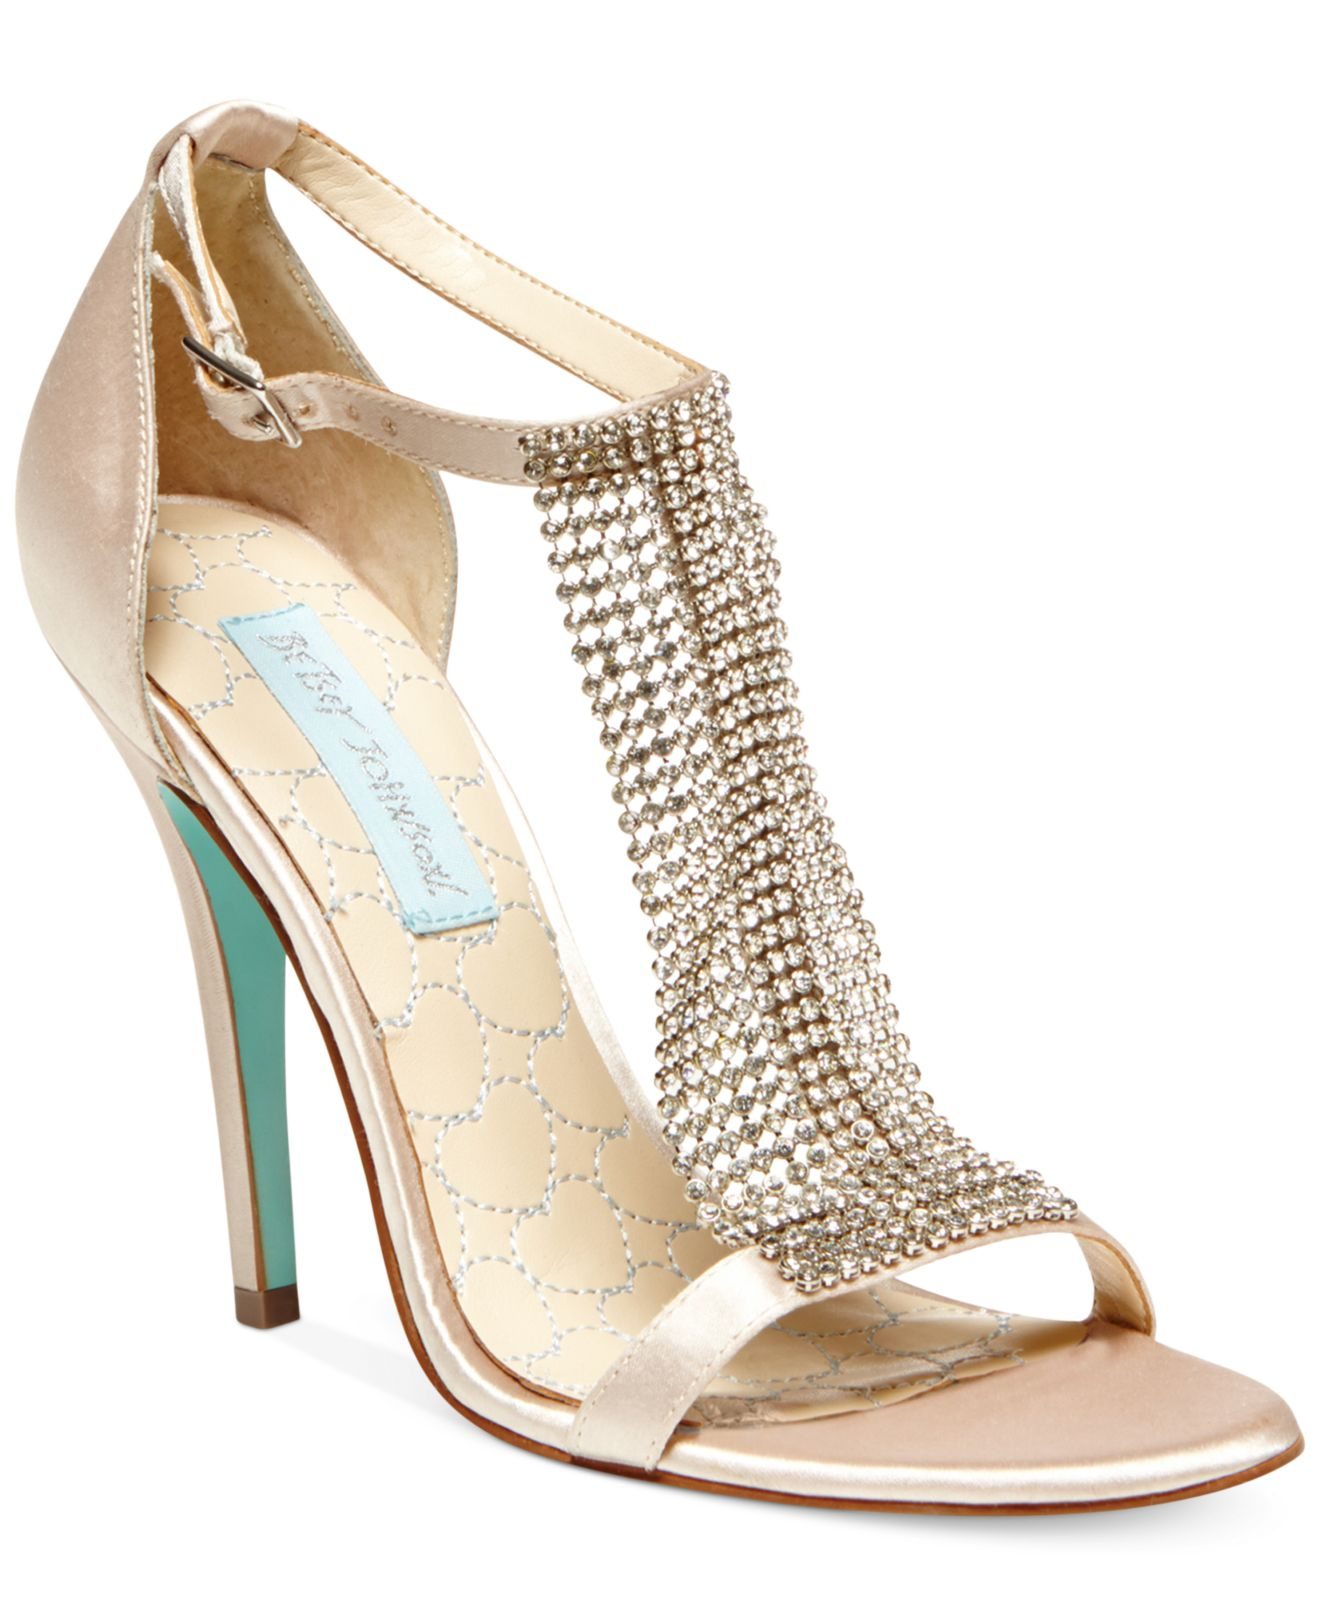 ea375c13a Betsey Johnson Blue By Mesh Evening Sandals in Natural - Lyst